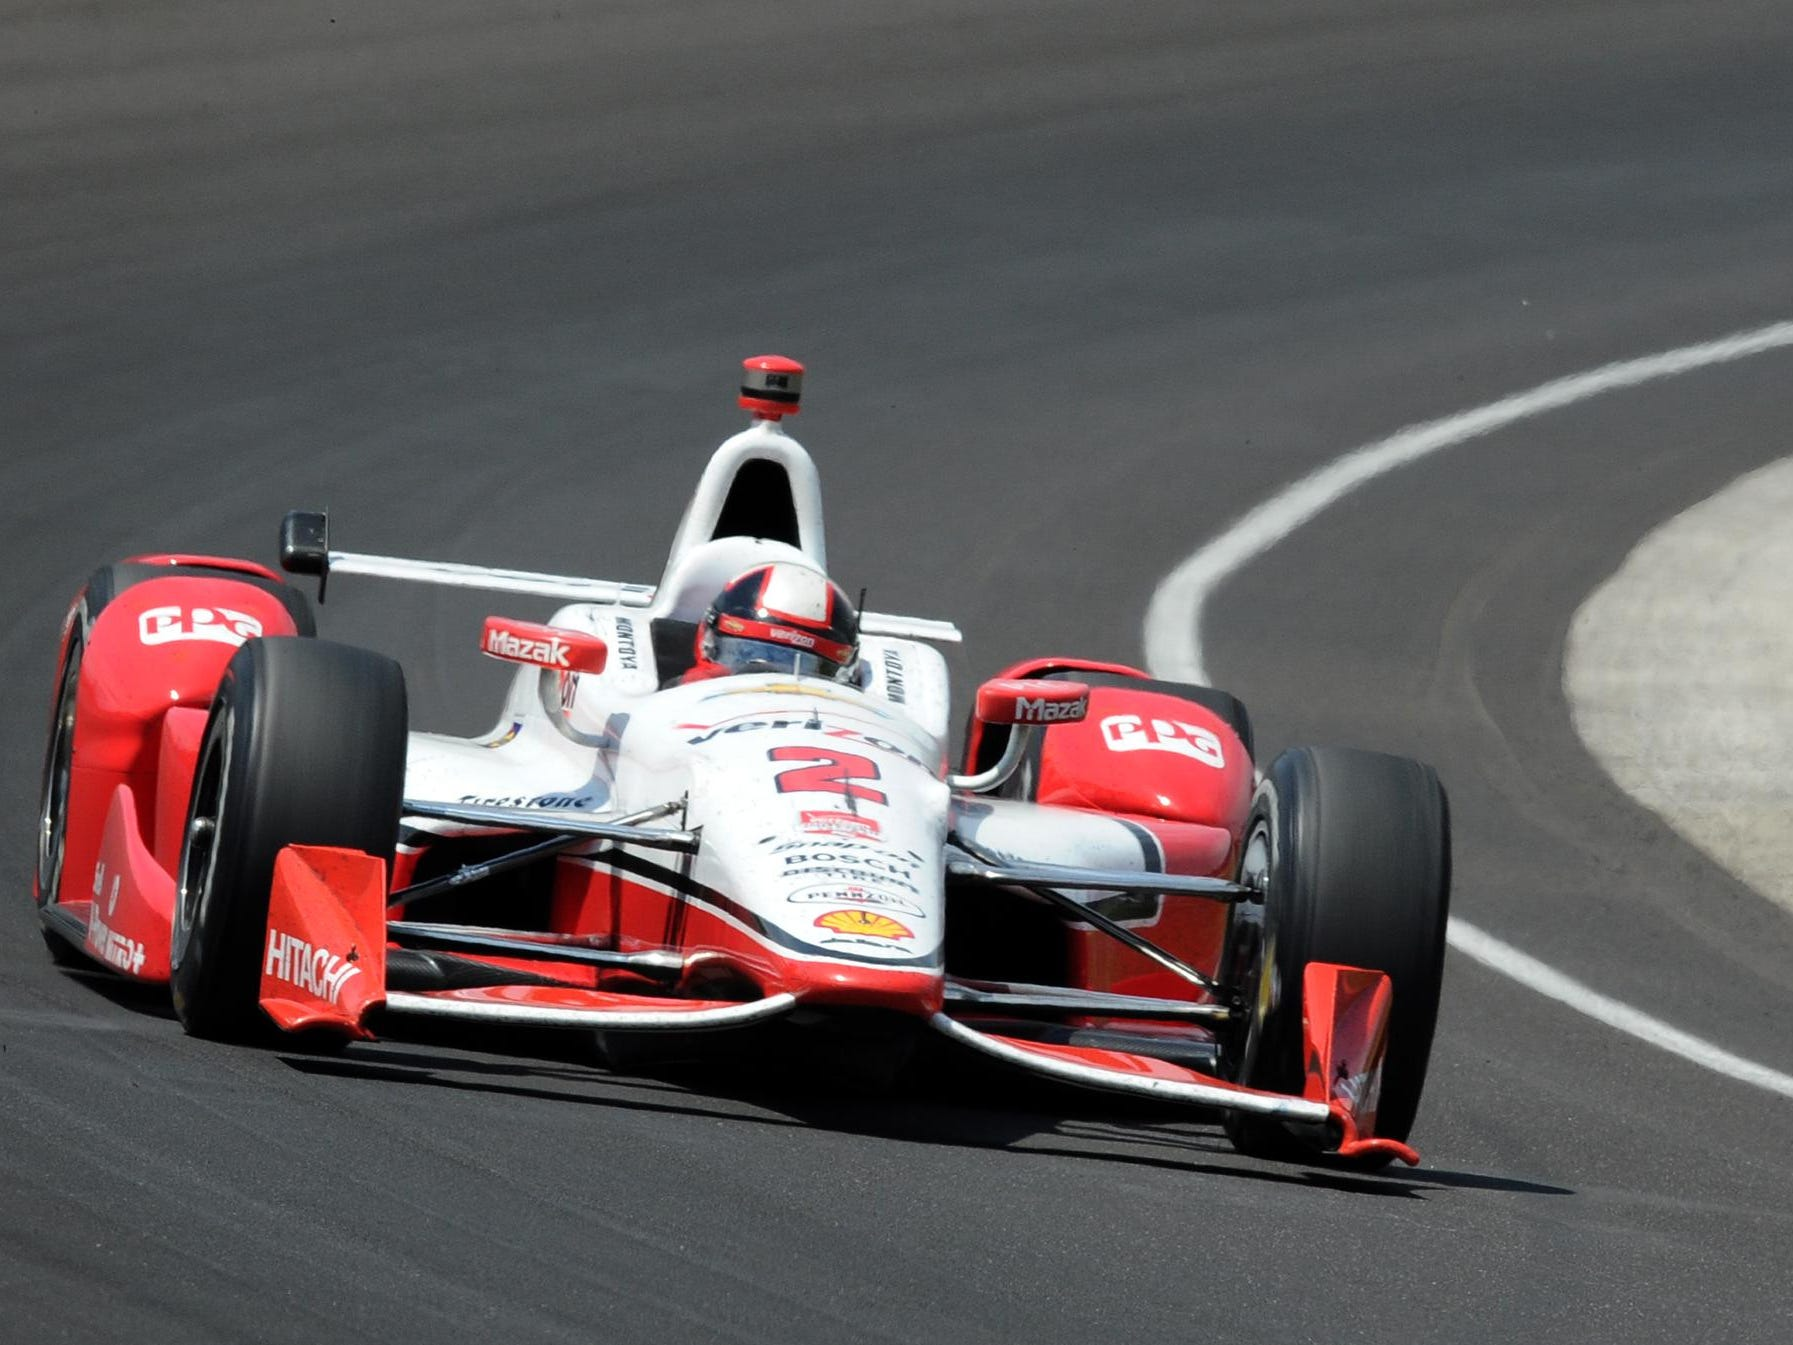 Juan Pablo Montoya (2) of Team Penske navigates his car through turn one during the 99th running of The Indianapolis 500, May 23, 2015, in Speedway, Ind.